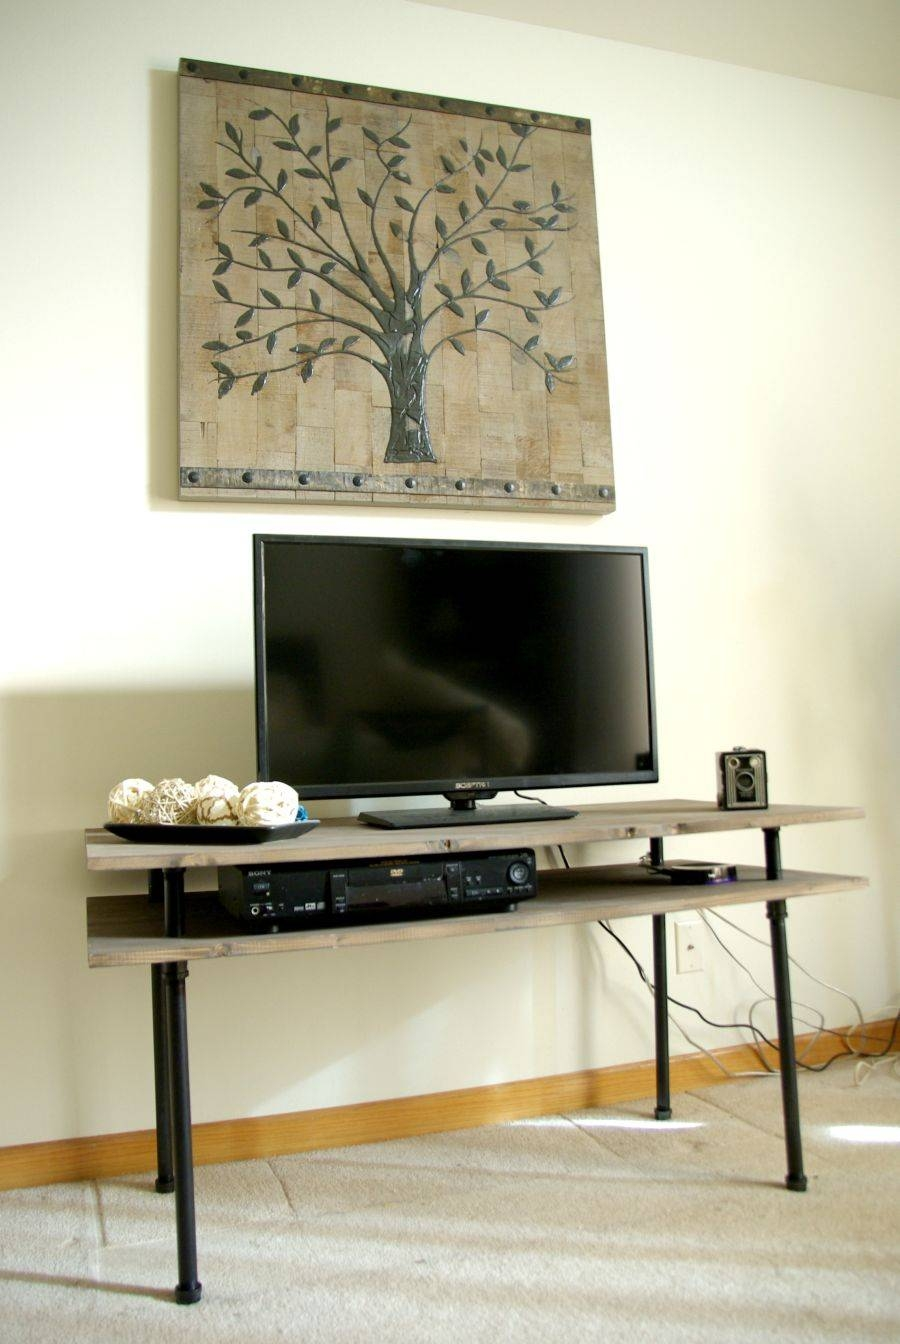 13 Diy Plans For Building A Tv Stand | Guide Patterns within Telly Tv Stands (Image 1 of 15)